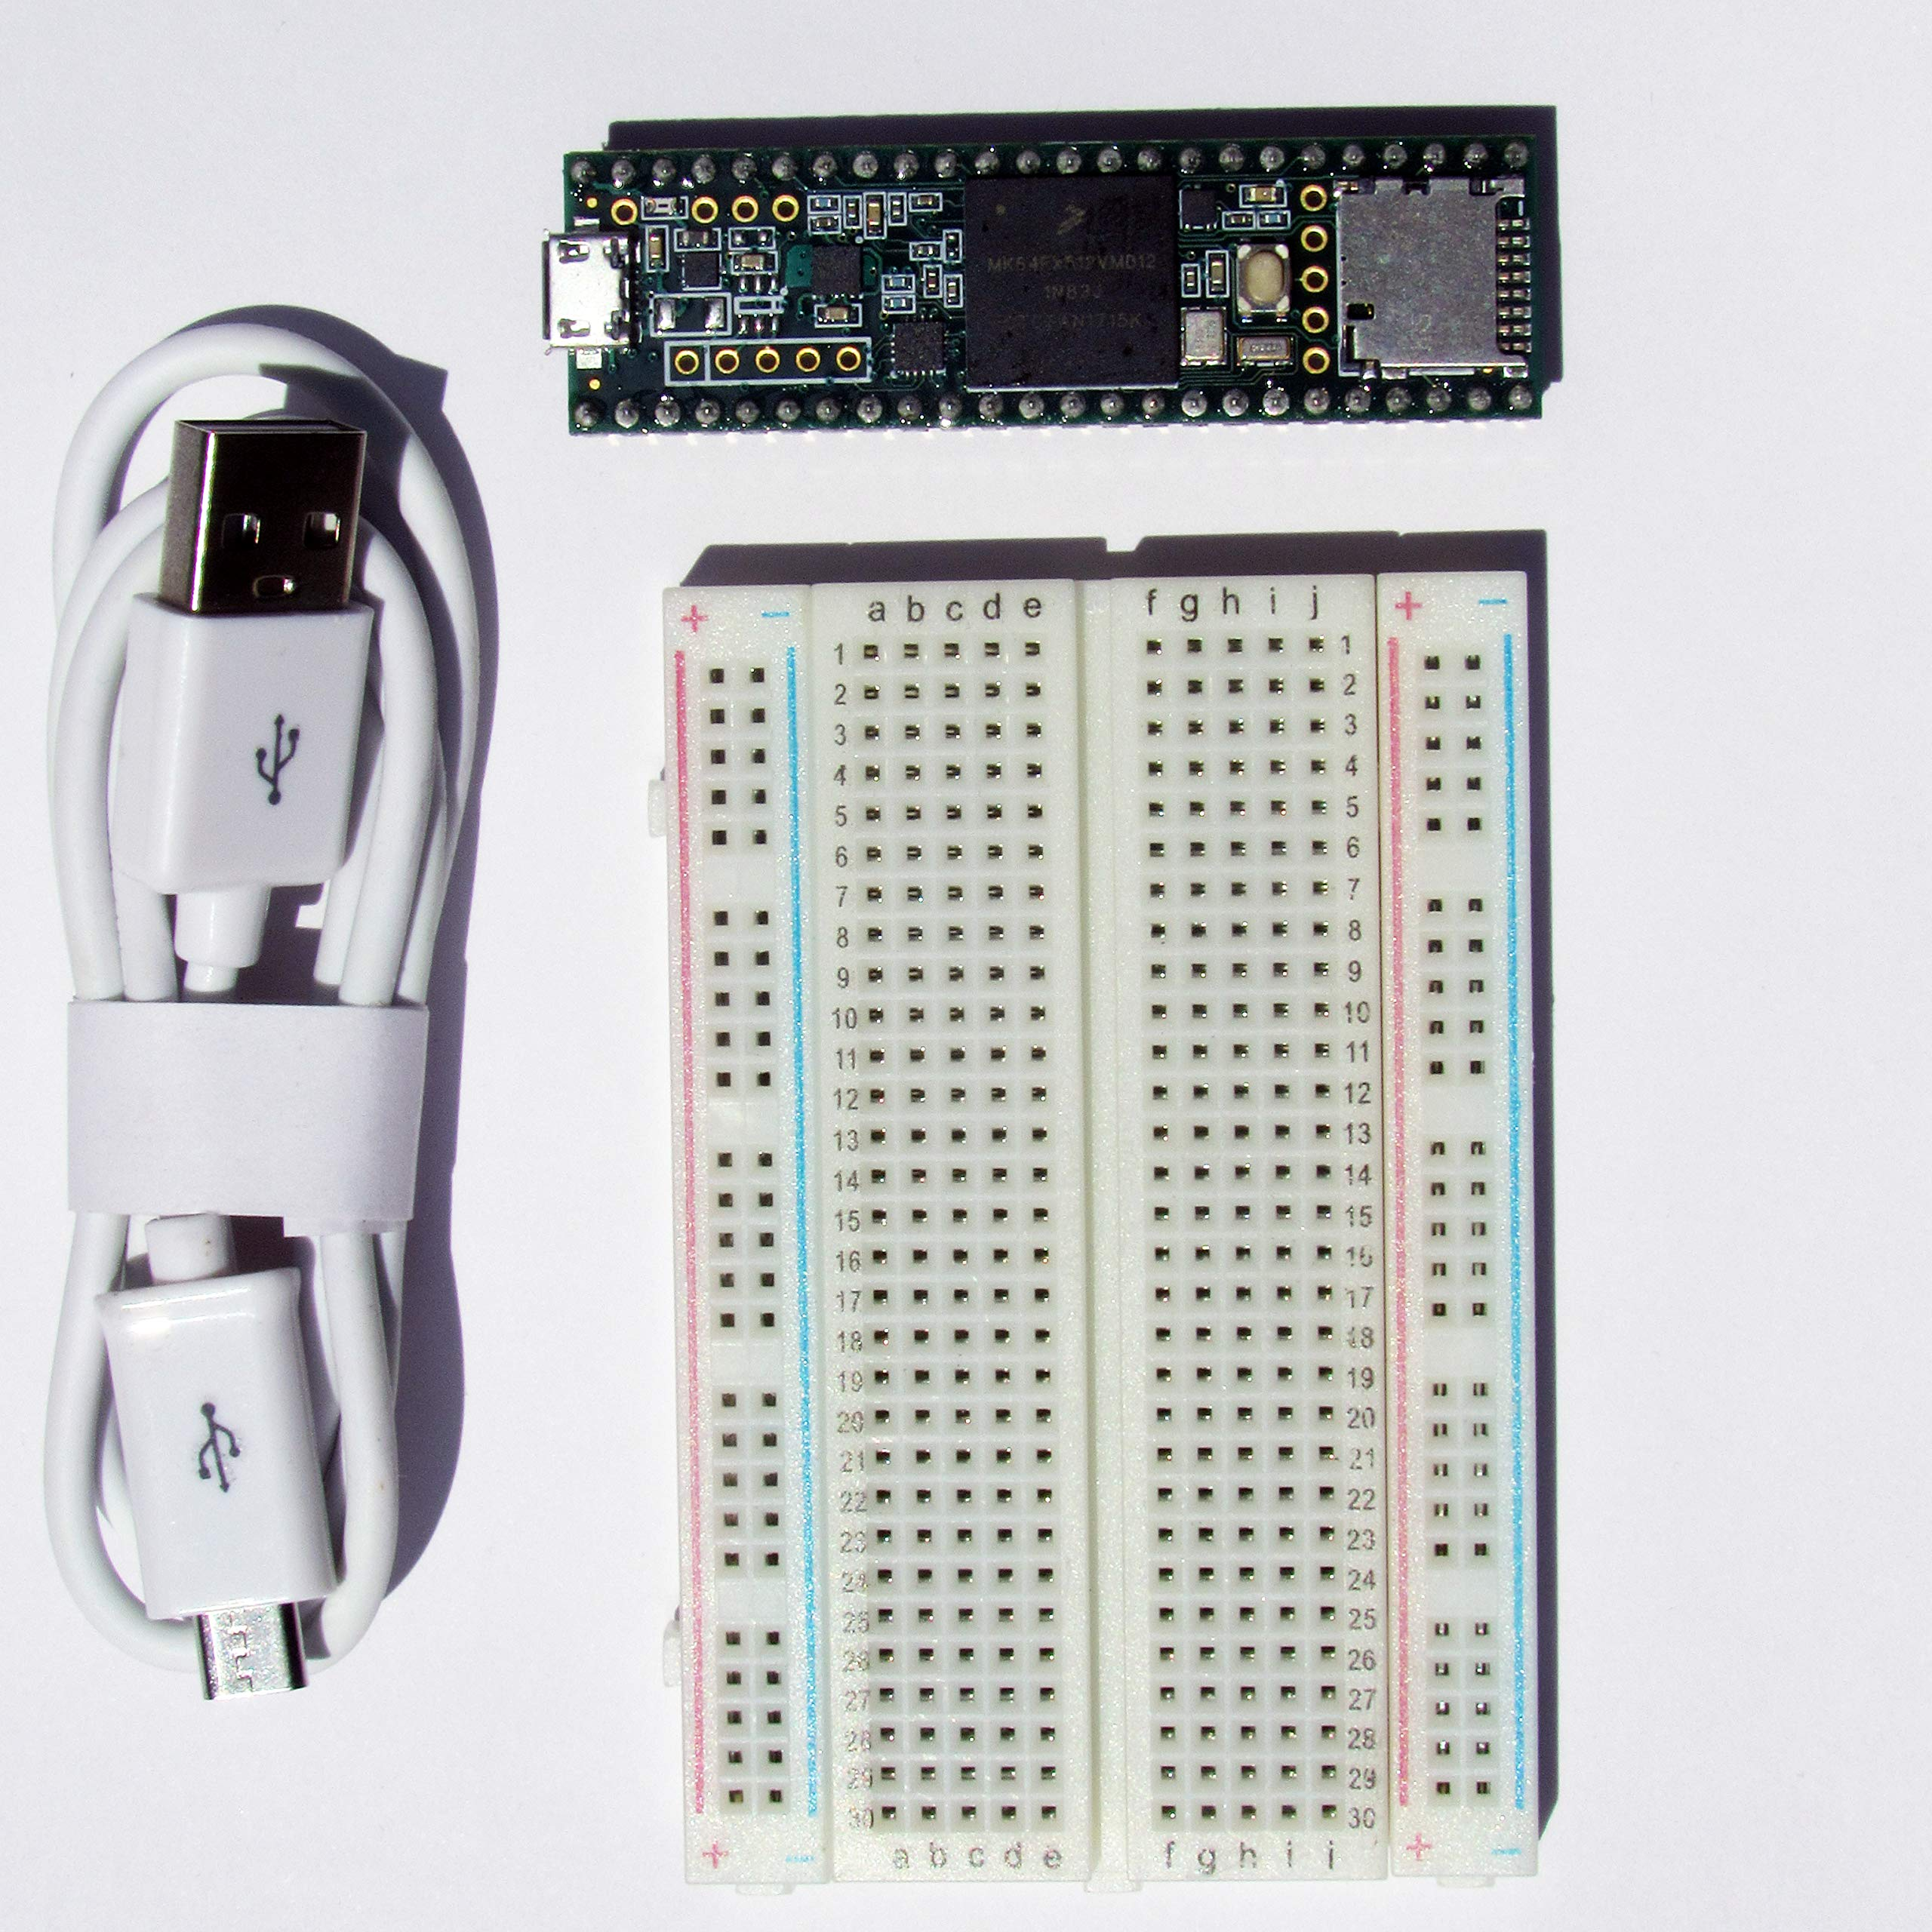 Teensy 3.5 with pins, Plus breadboard and USB Cable